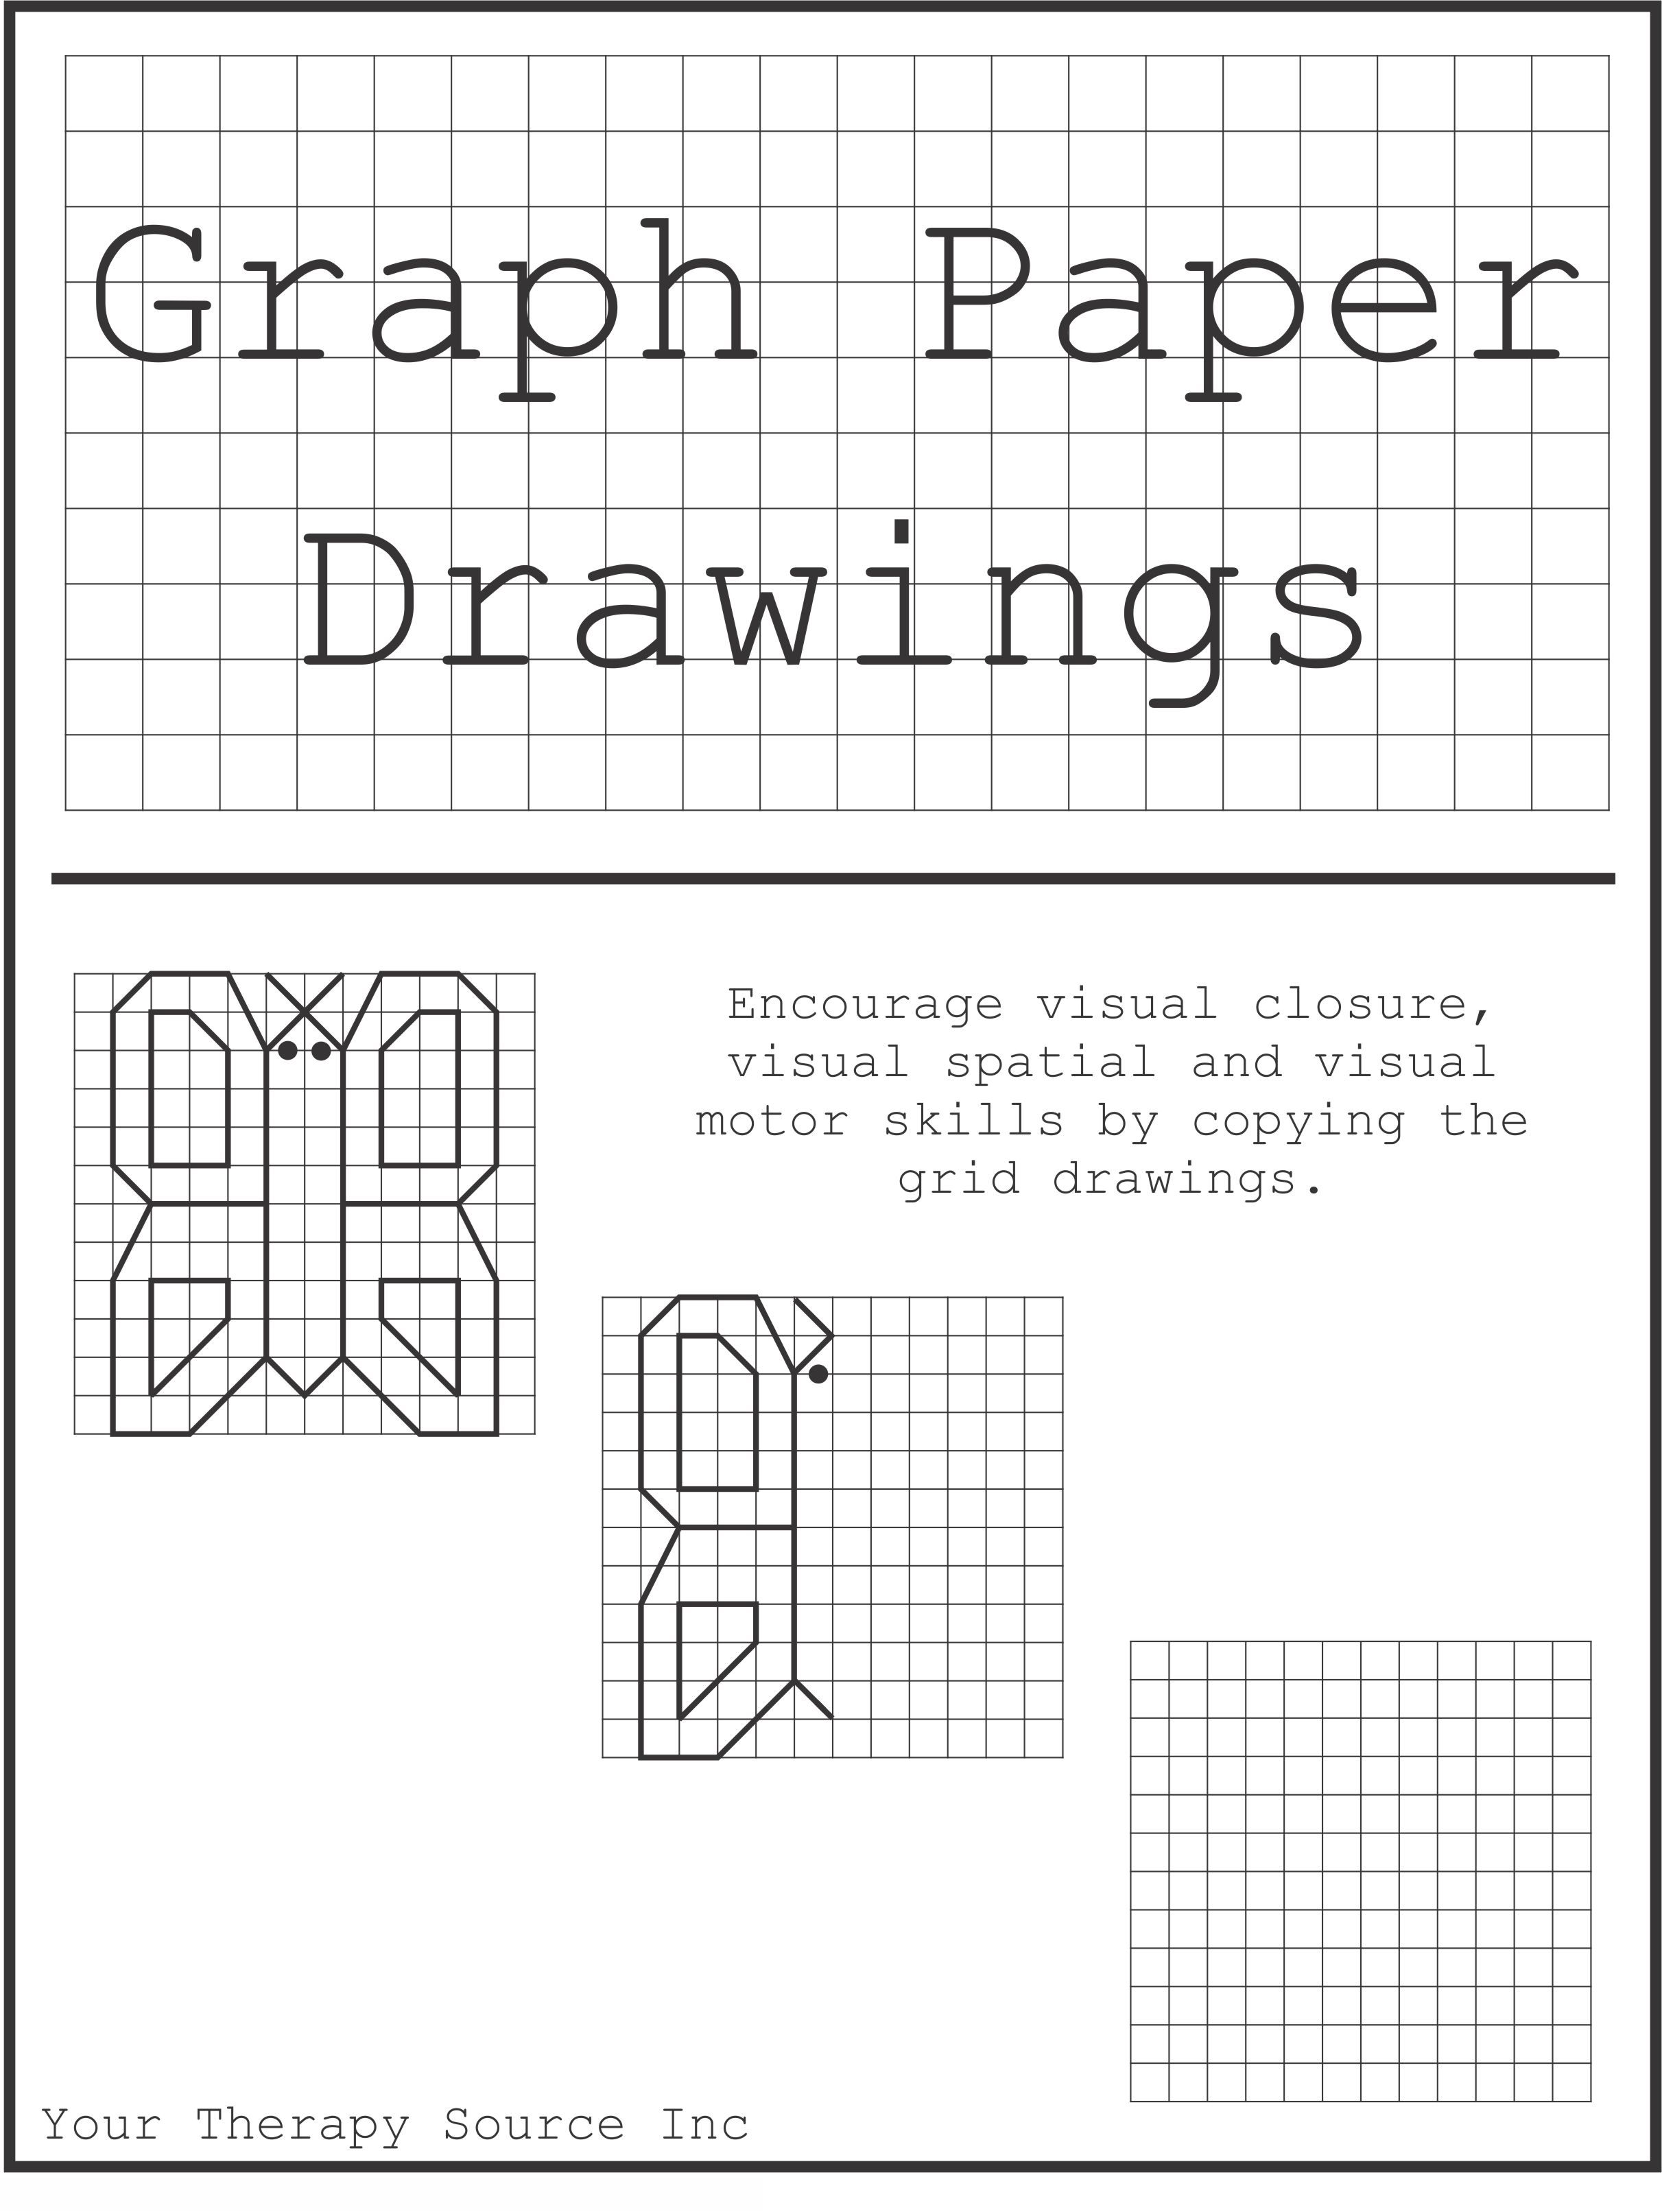 Graph Paper Drawings